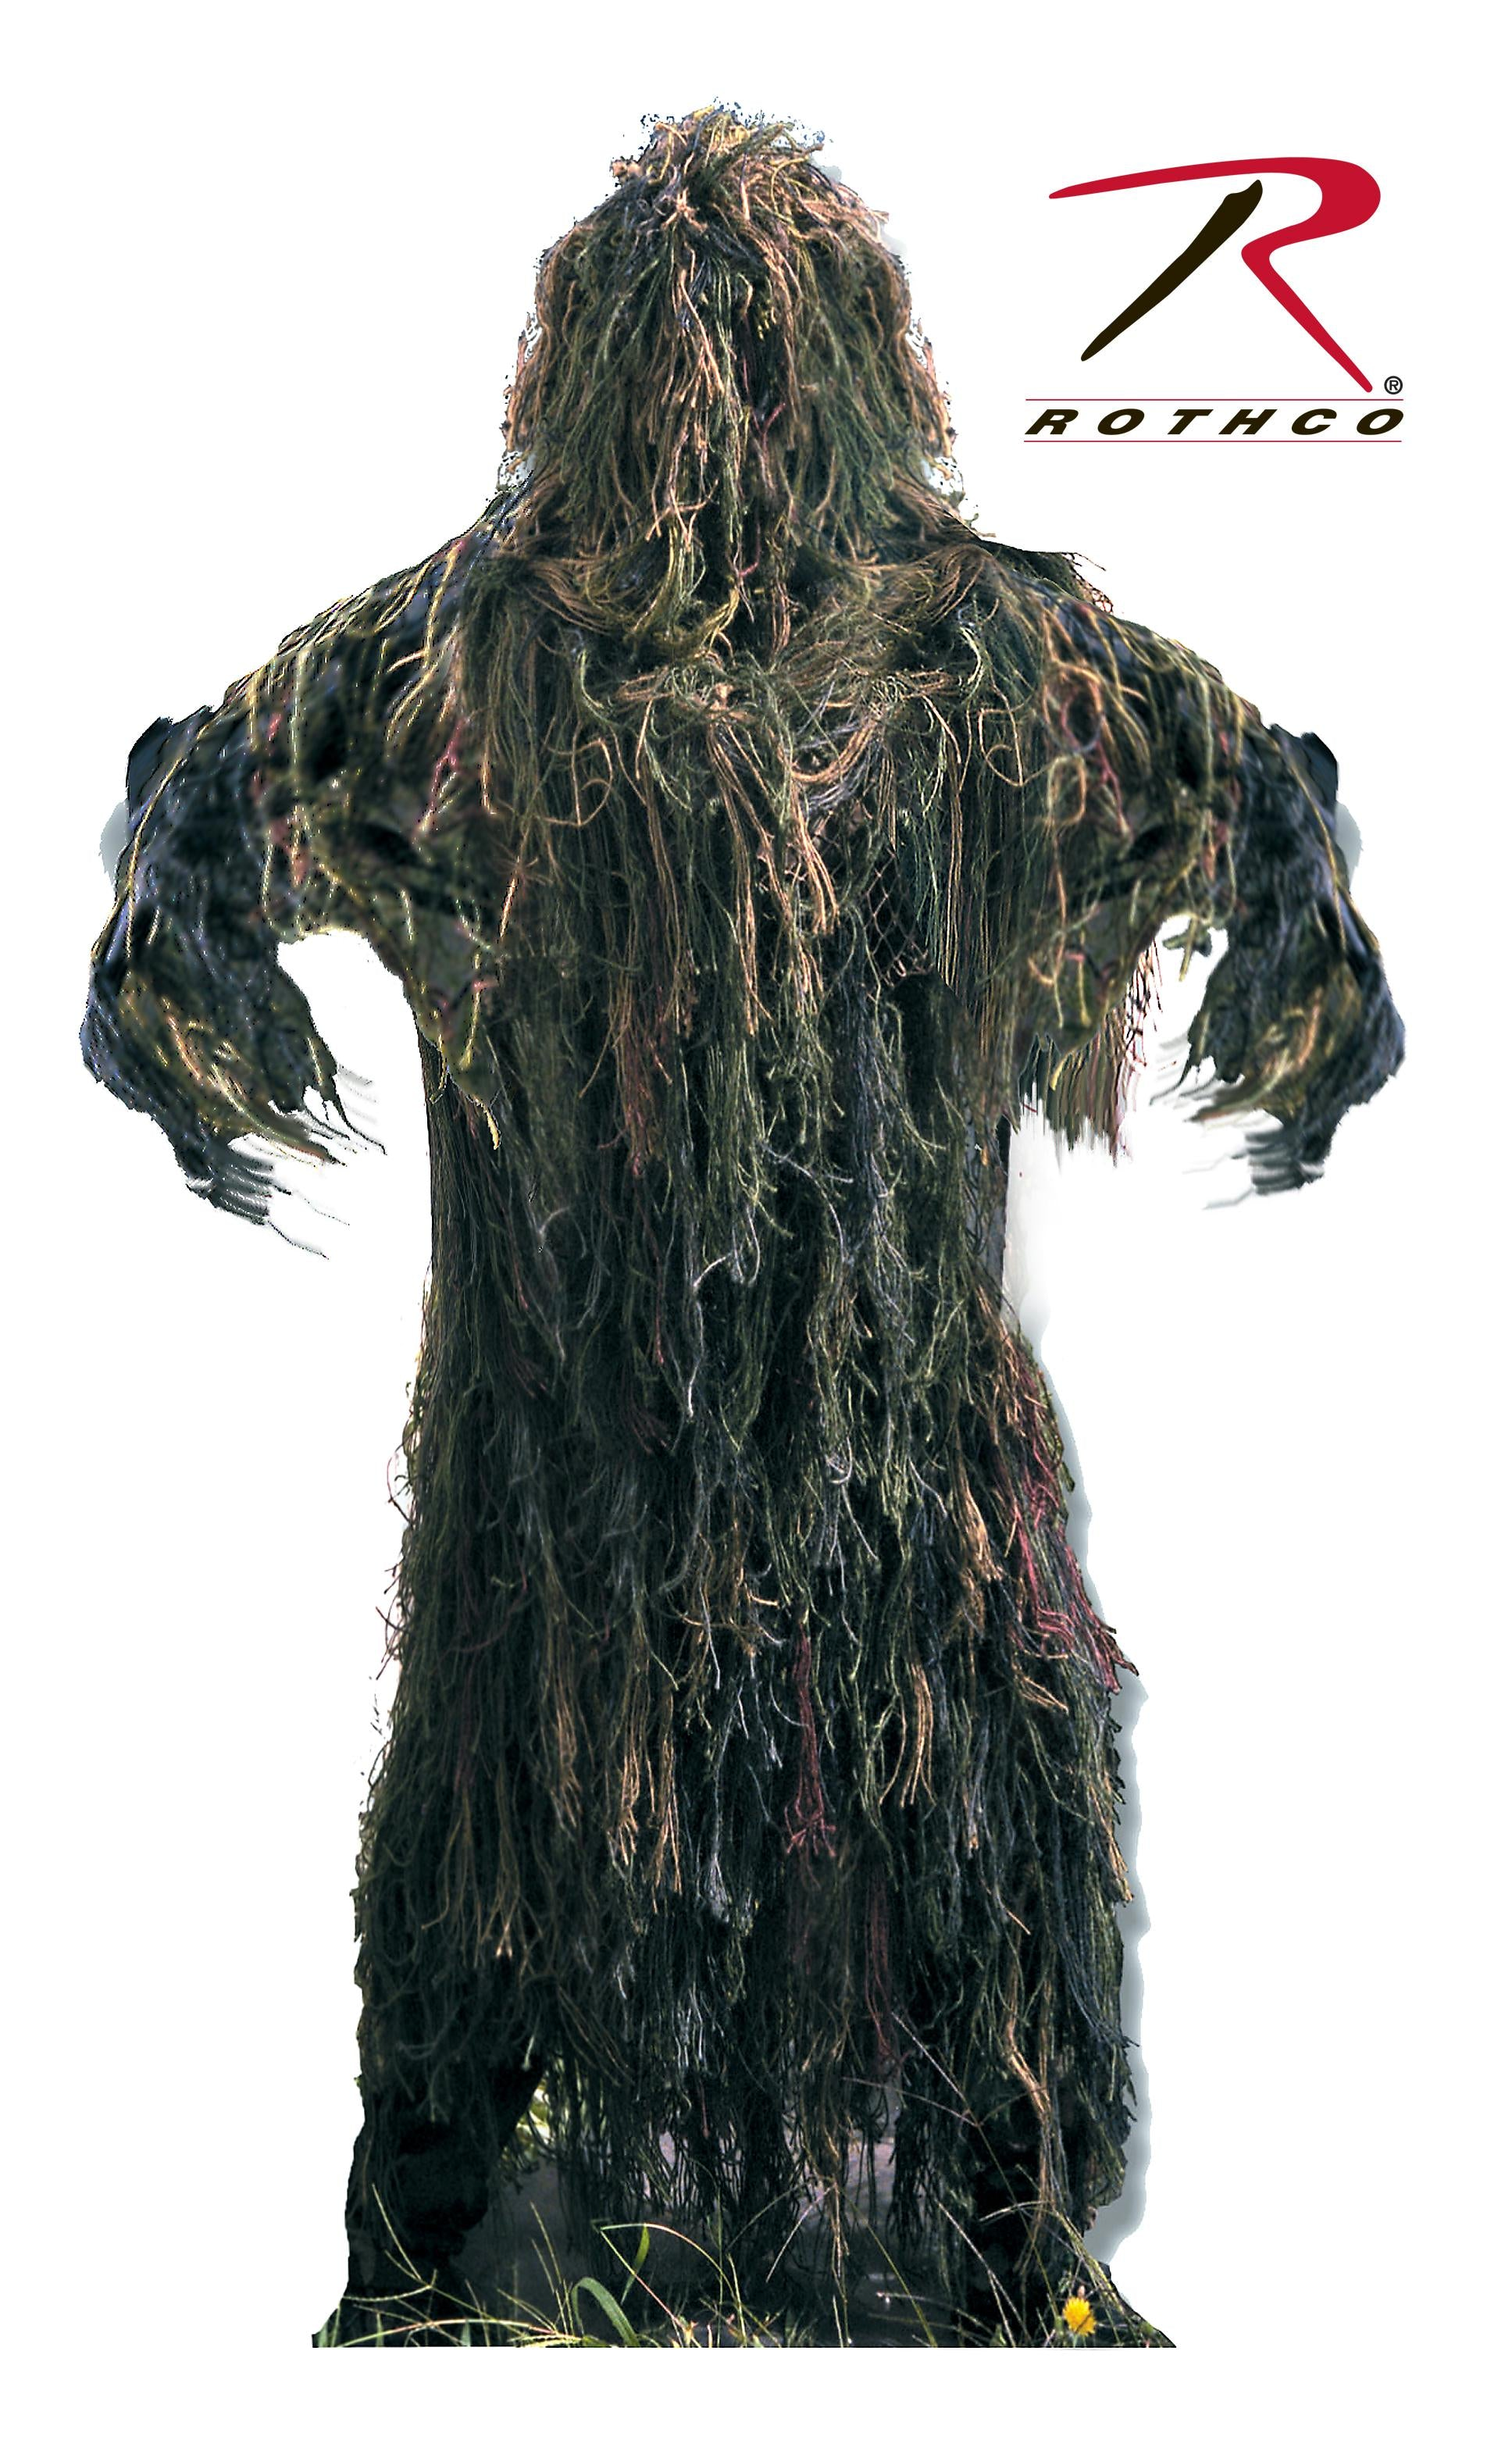 Rothco Lightweight All Purpose Ghillie Suit - Woodland Camo / M/L